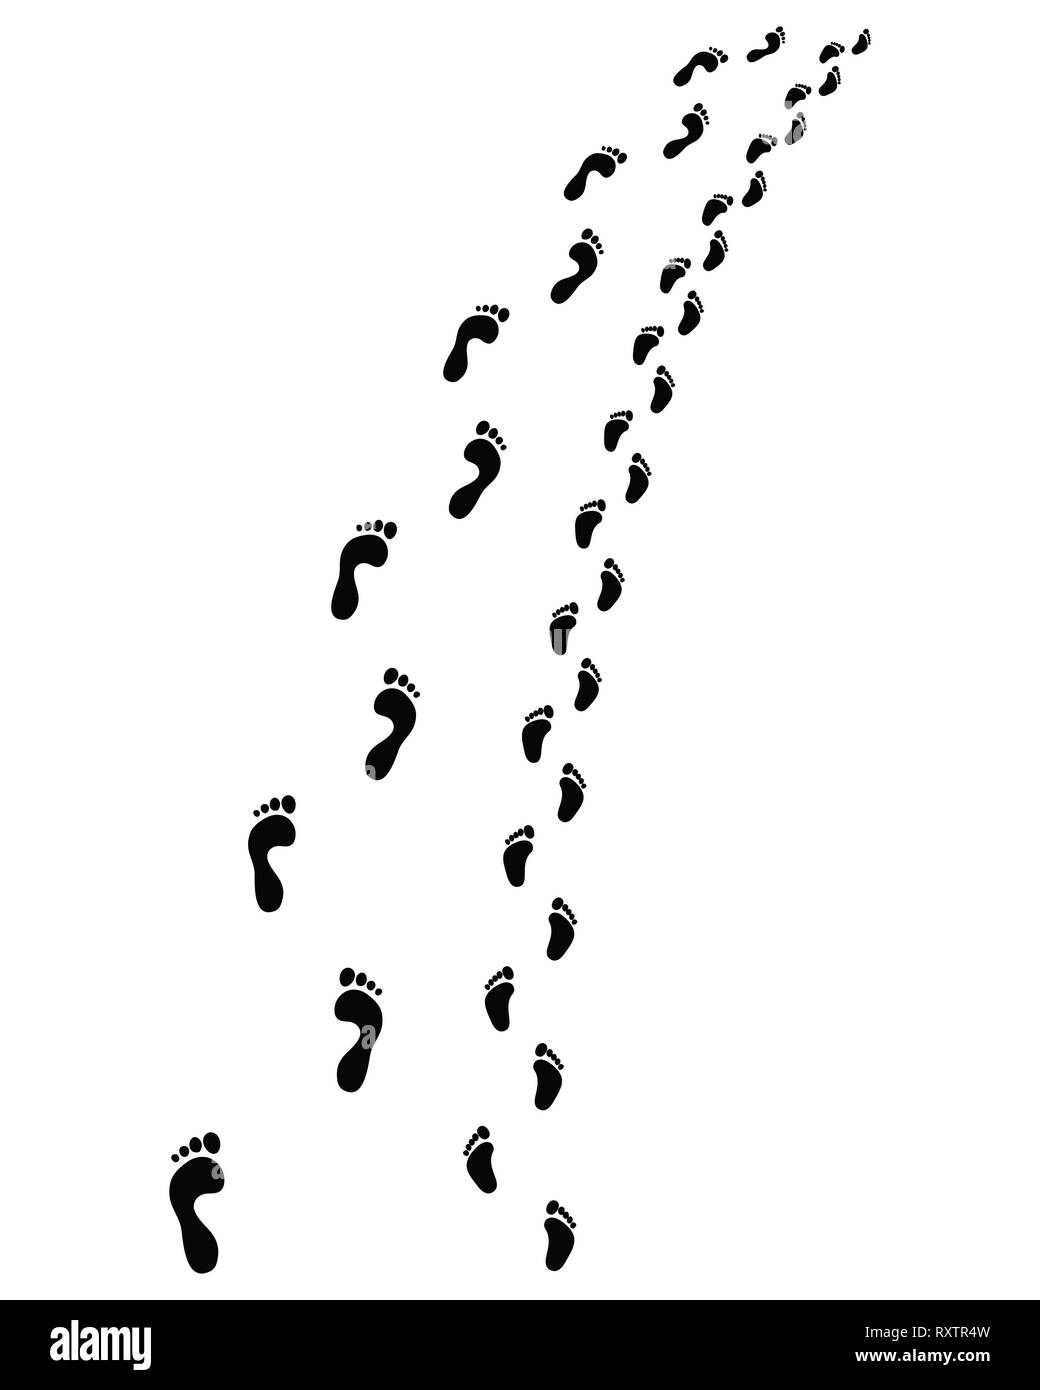 Trail of human and baby bare feet, turn left or right - Stock Image